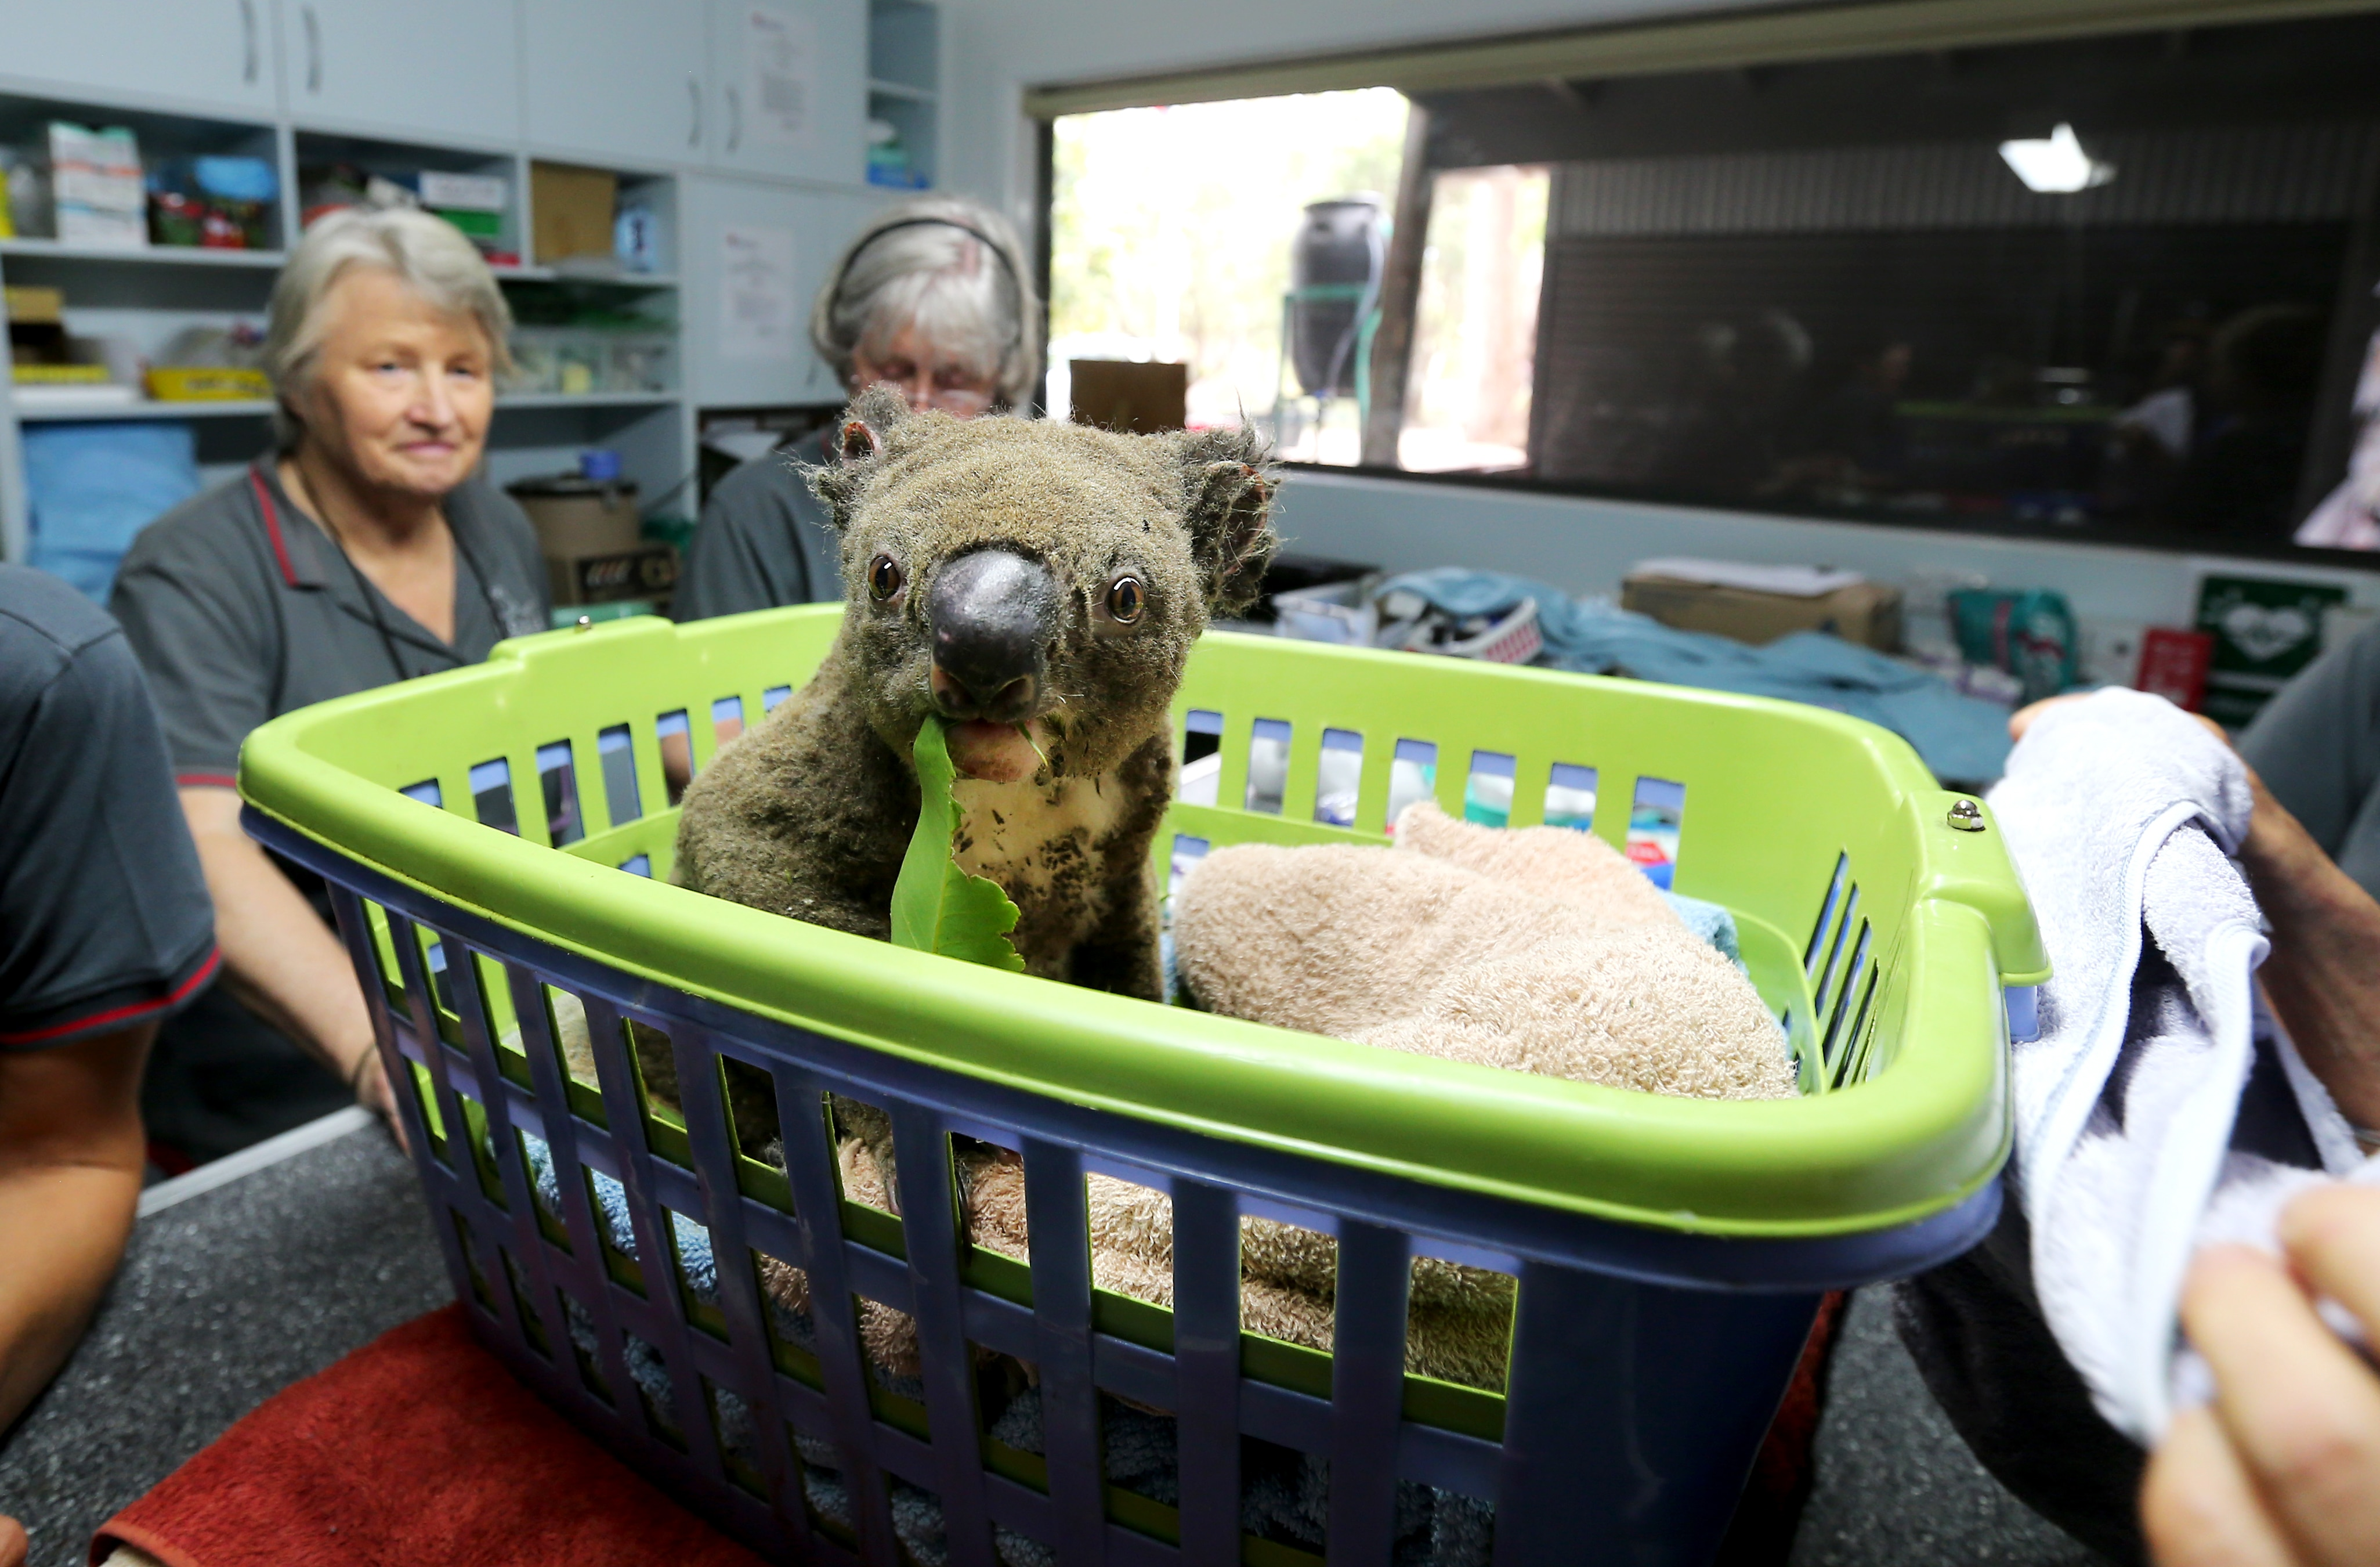 Paul the koala in the ICU recovering from burns at the Port Macquarie Koala Hospital, which has recieved more than $3.7 million in GoFundMe donations.